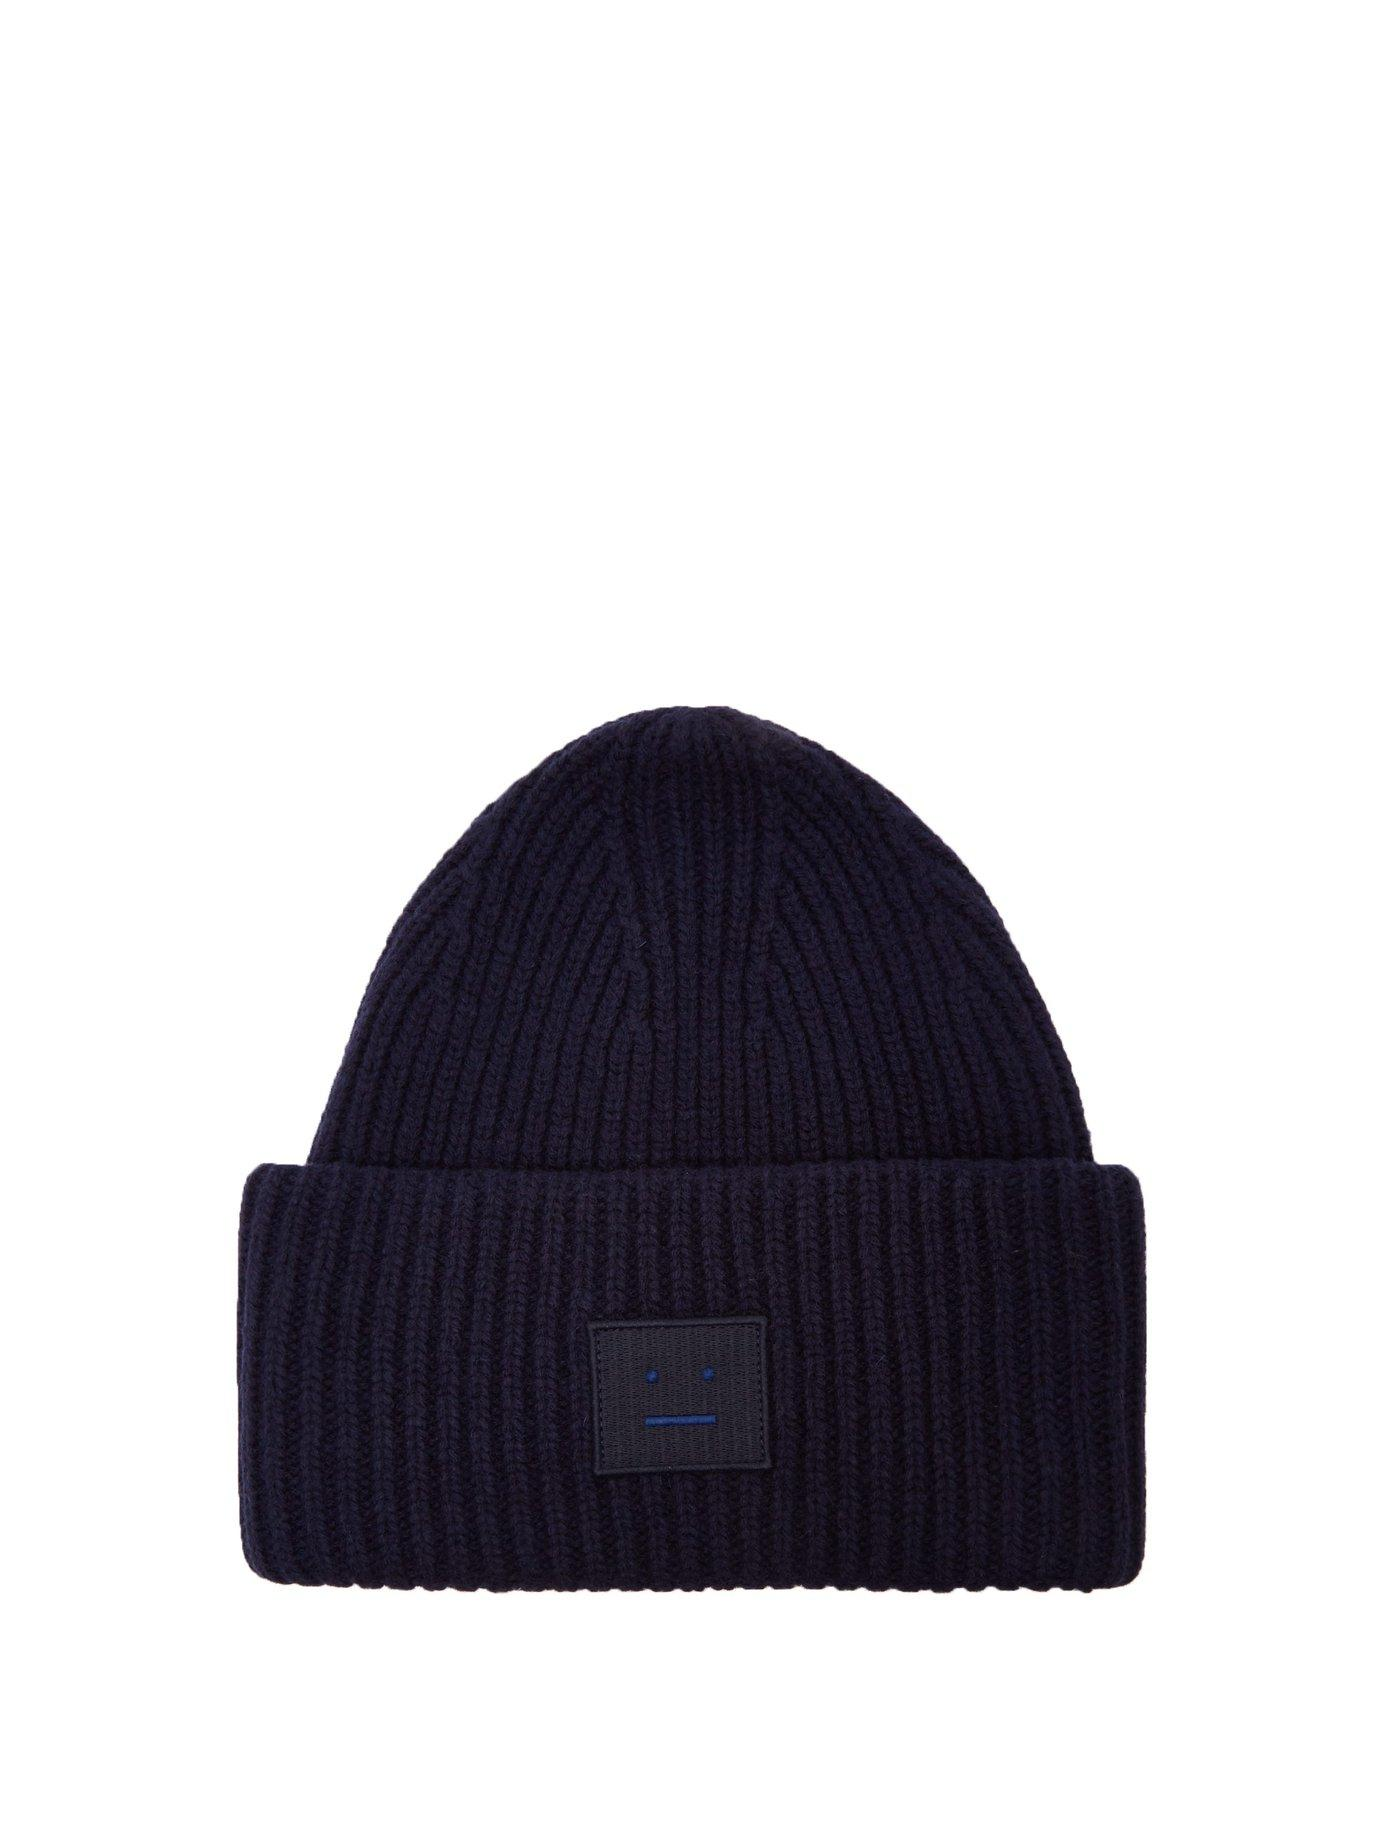 e4d0c9109b7820 Lyst - Acne Studios Pansy L Face Knit Hat In Navy in Blue